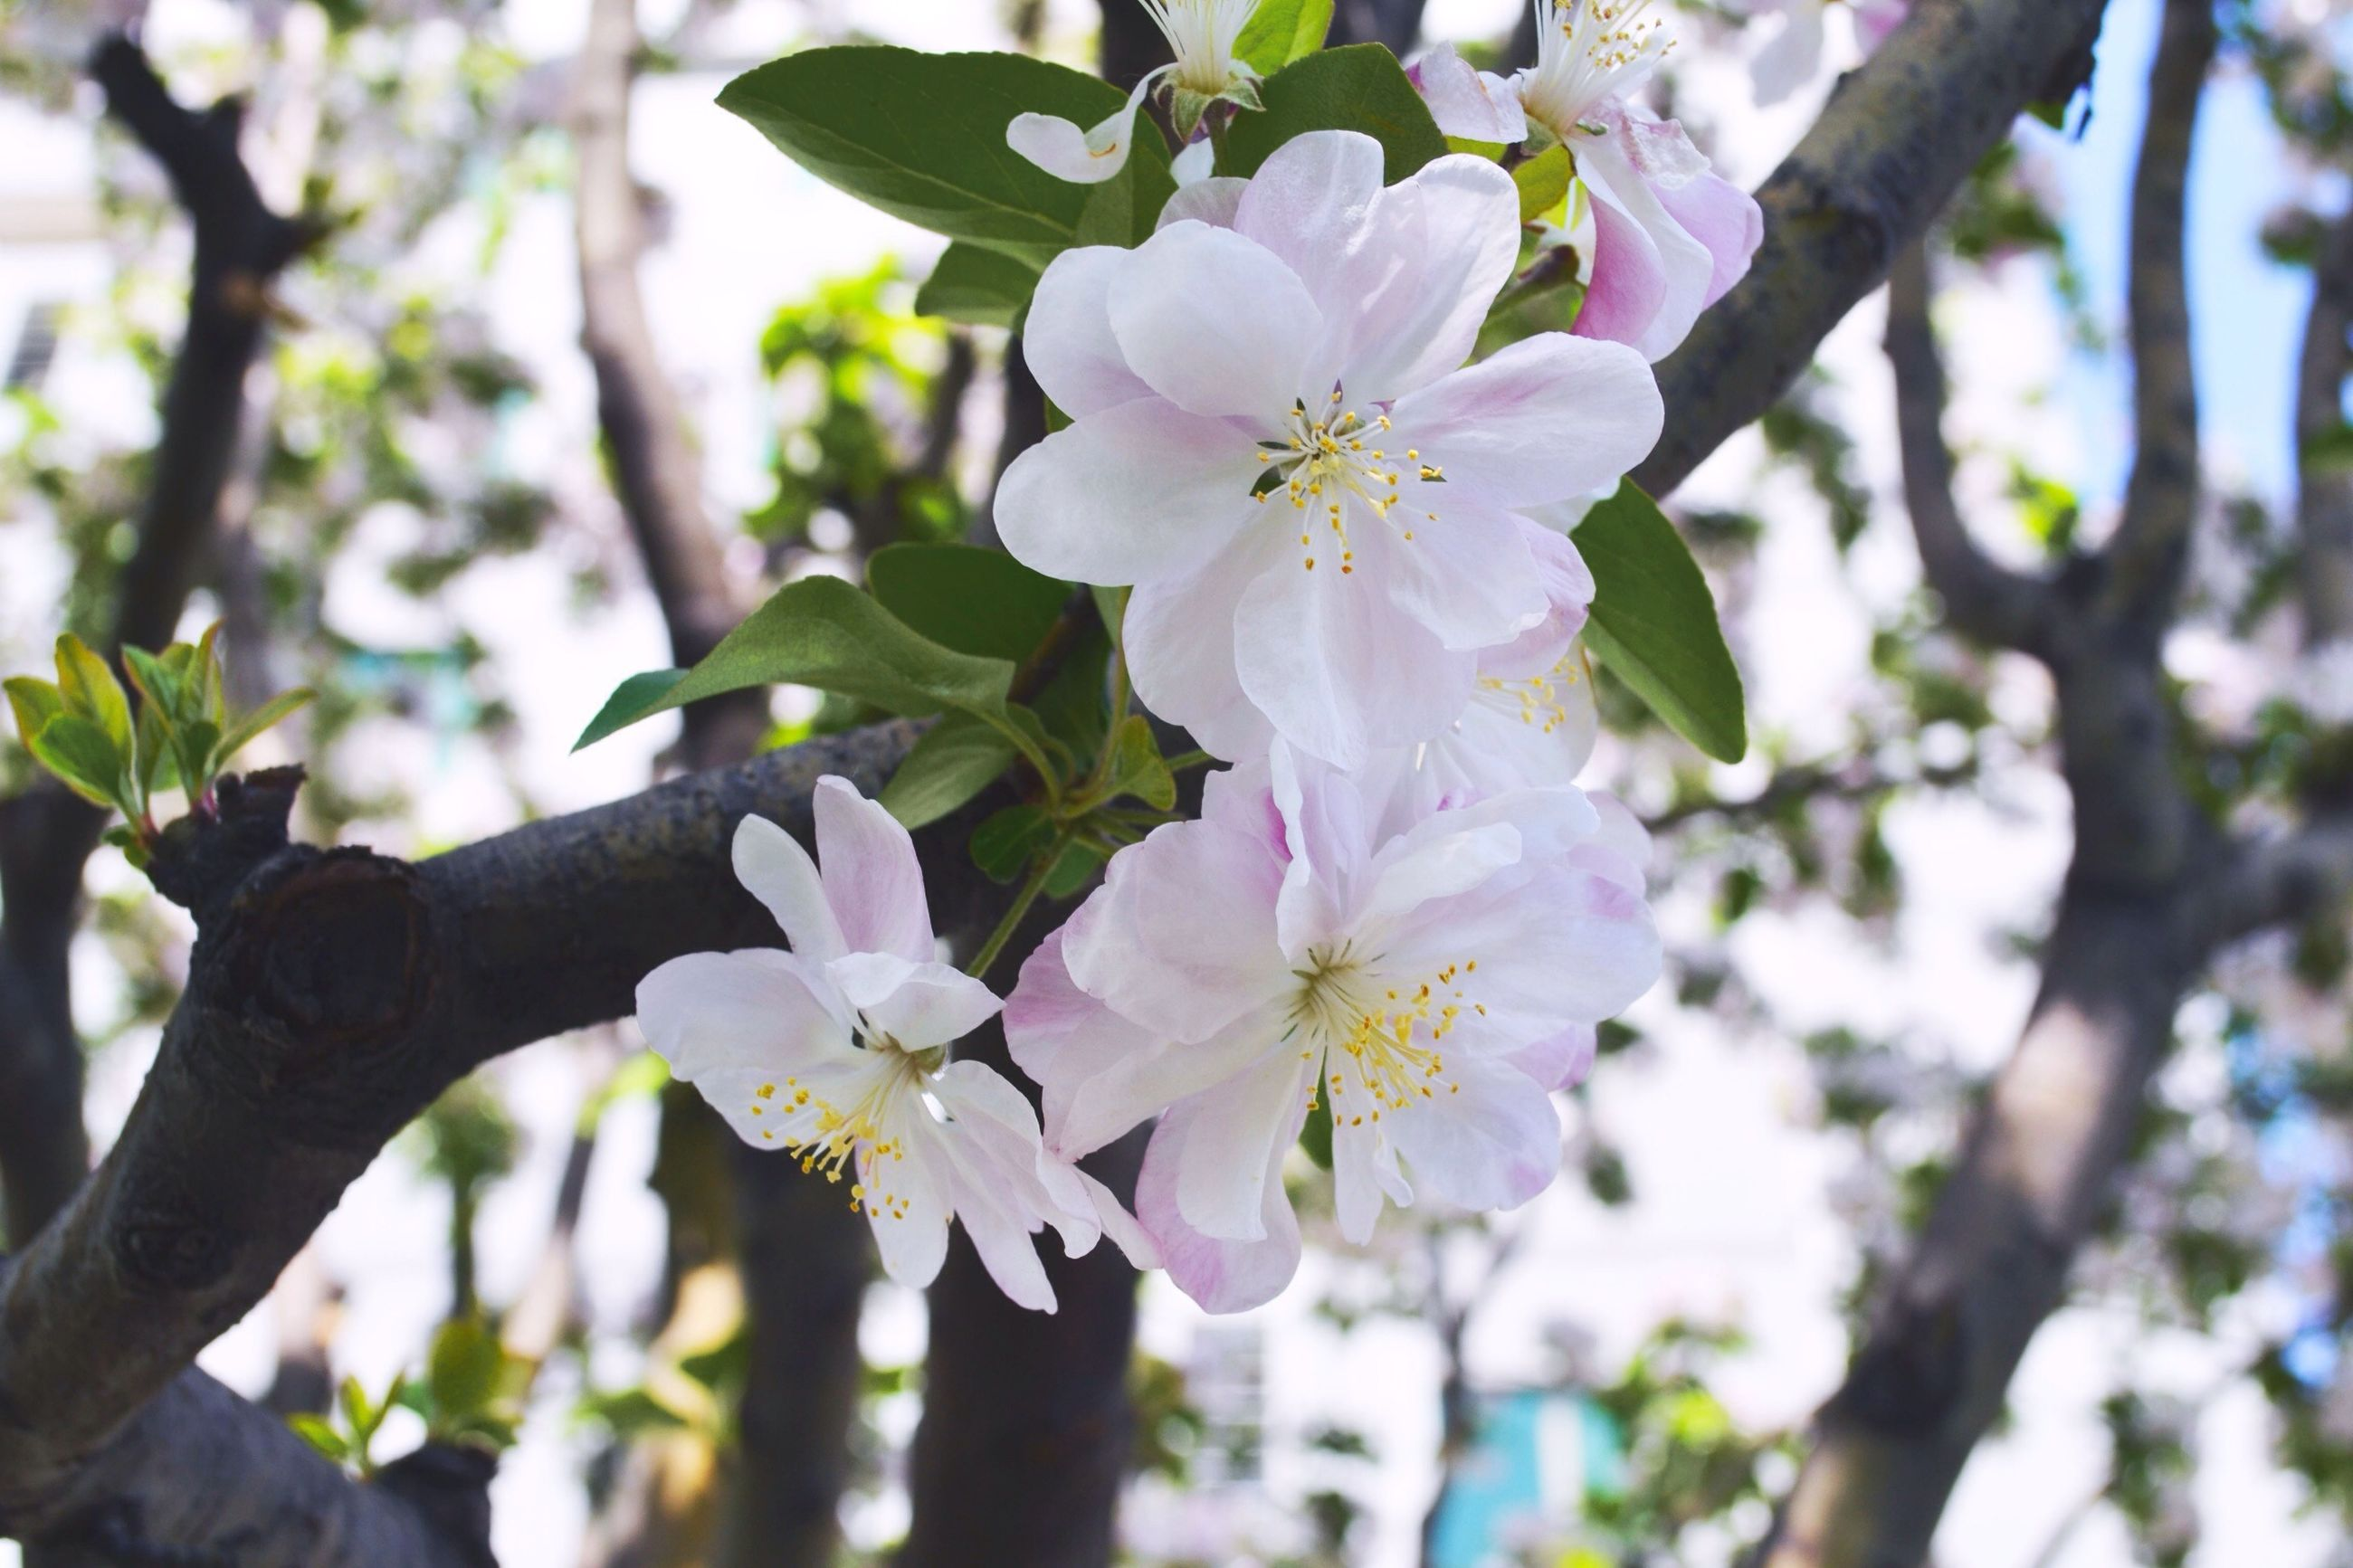 flower, freshness, growth, tree, fragility, branch, cherry blossom, beauty in nature, petal, blossom, nature, focus on foreground, blooming, cherry tree, in bloom, flower head, close-up, low angle view, springtime, white color